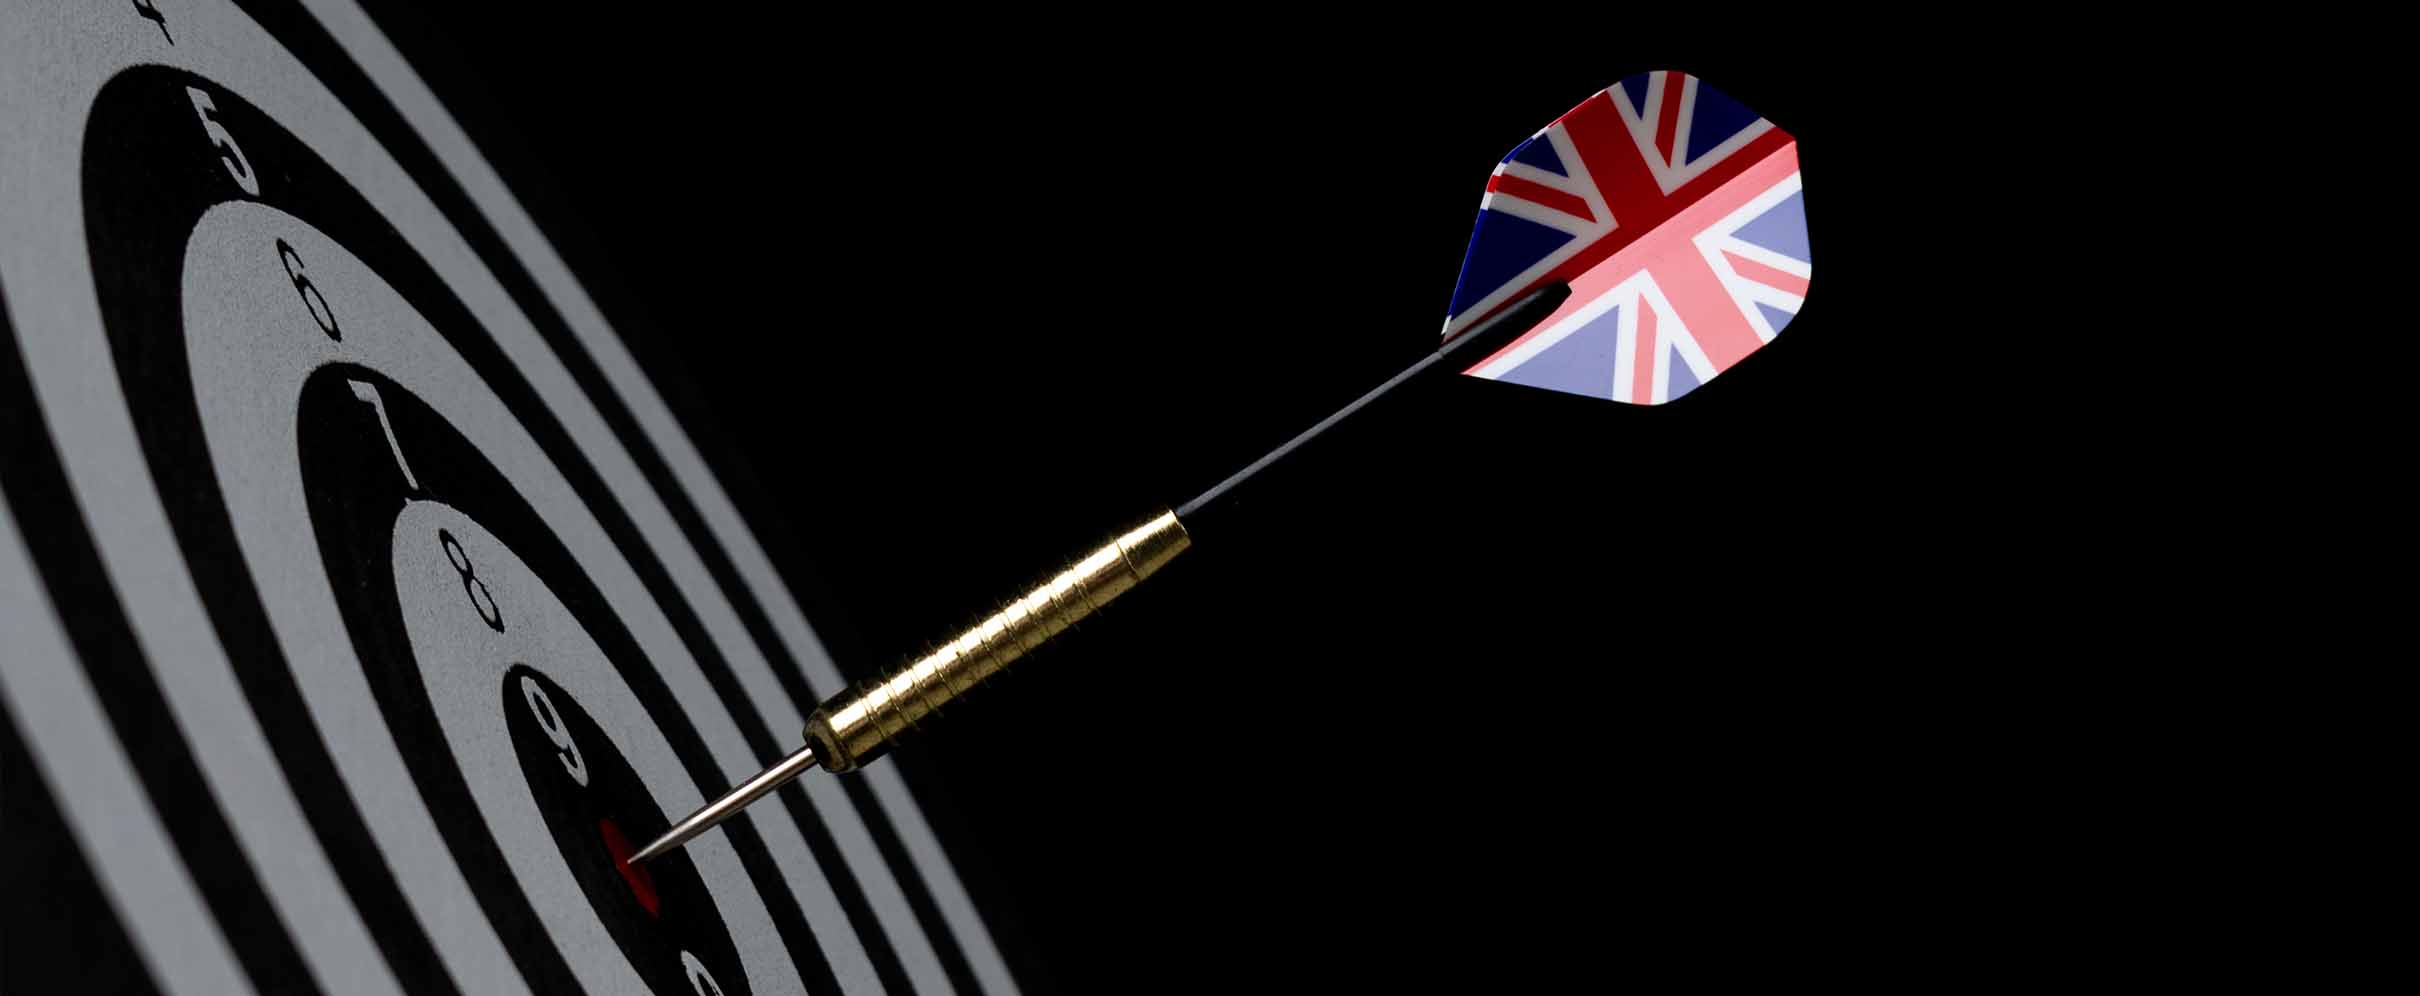 A dart with the British flag on its tail.